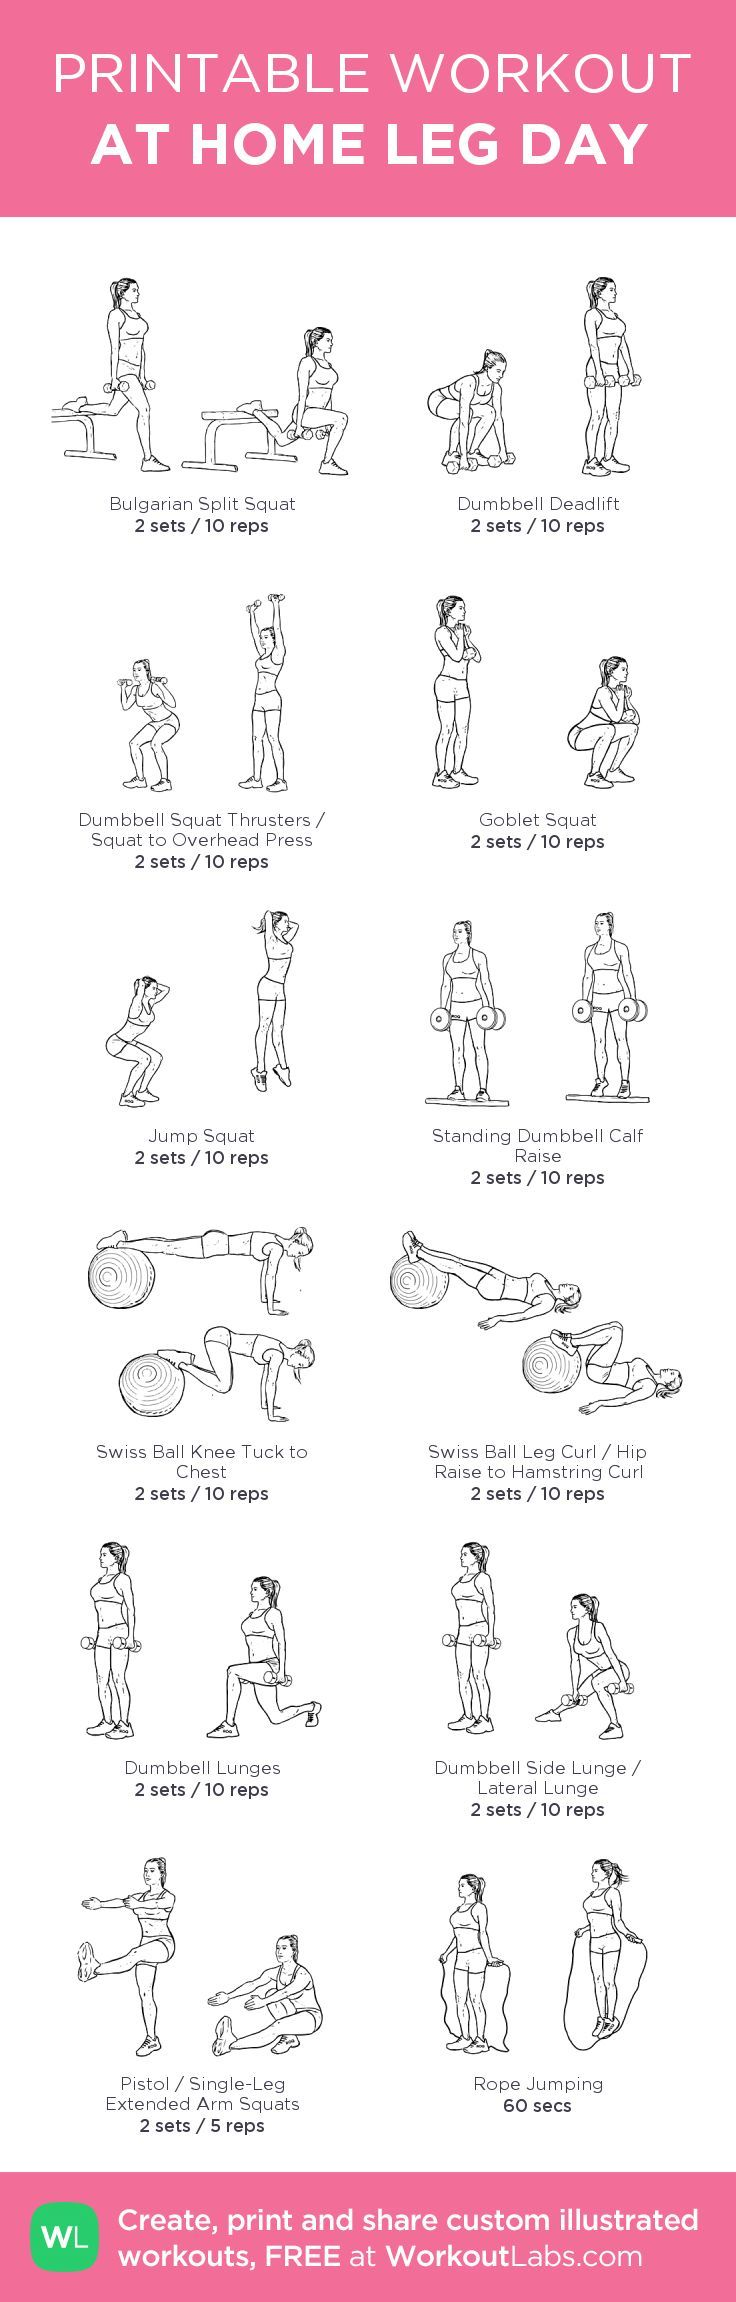 Awesome at-home leg workout!